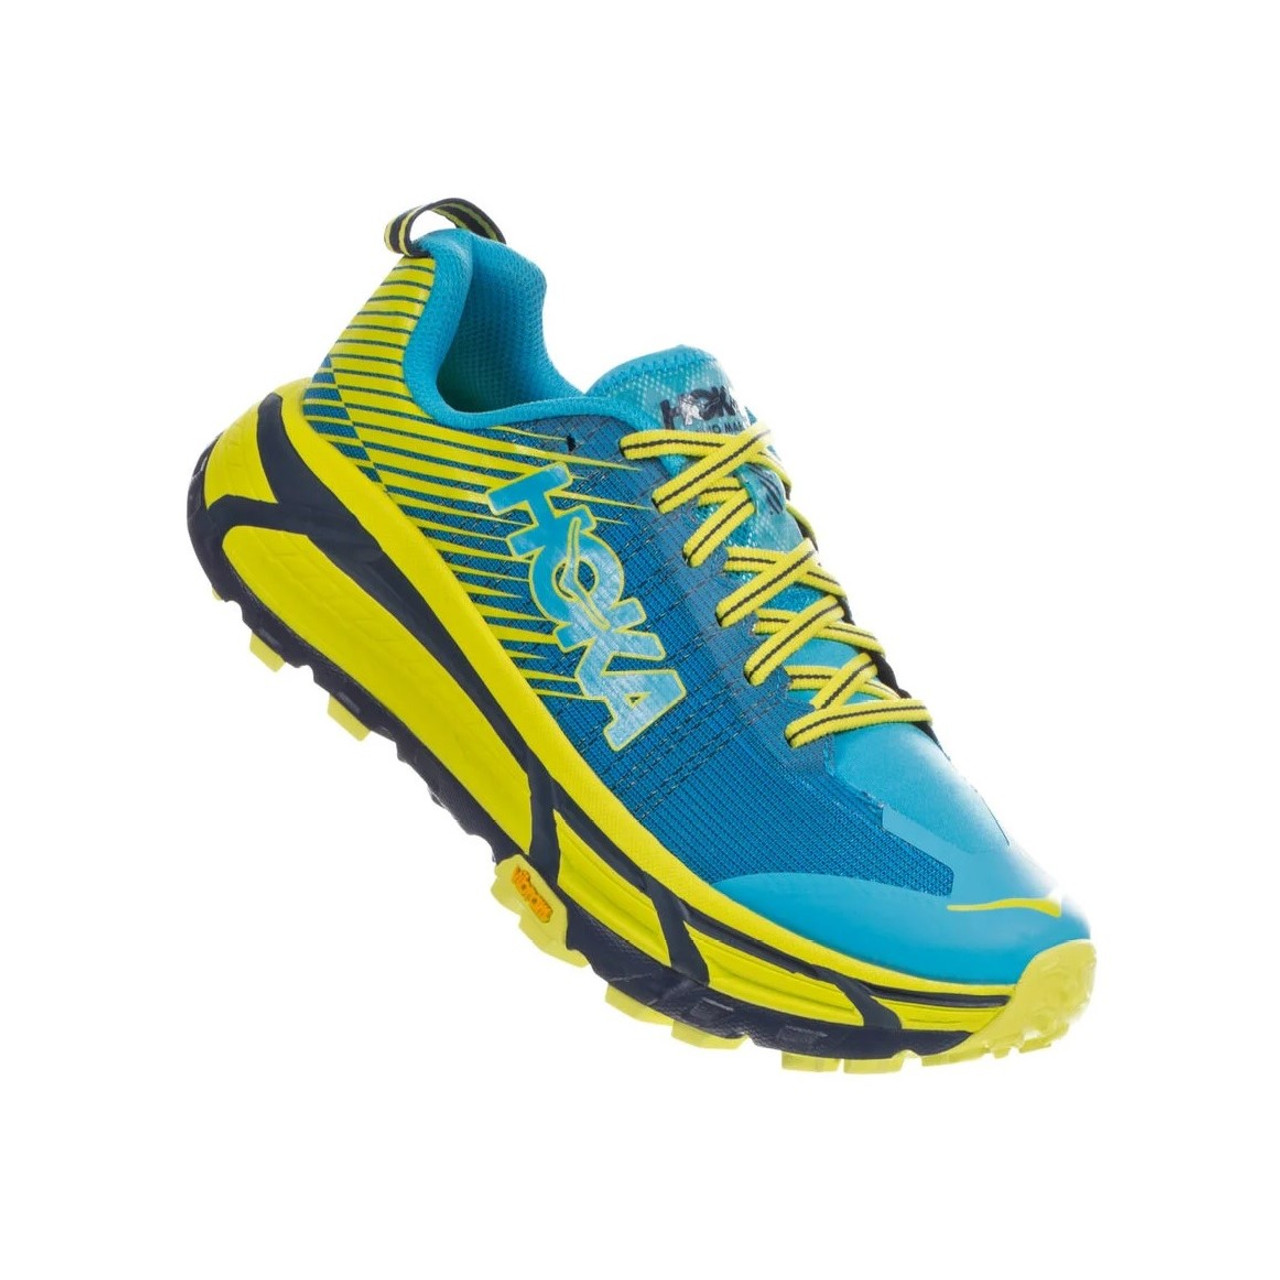 sports shoes 4996a 016ba Hoka One One Men's Evo Mafate 2 Trail Shoe - 2019